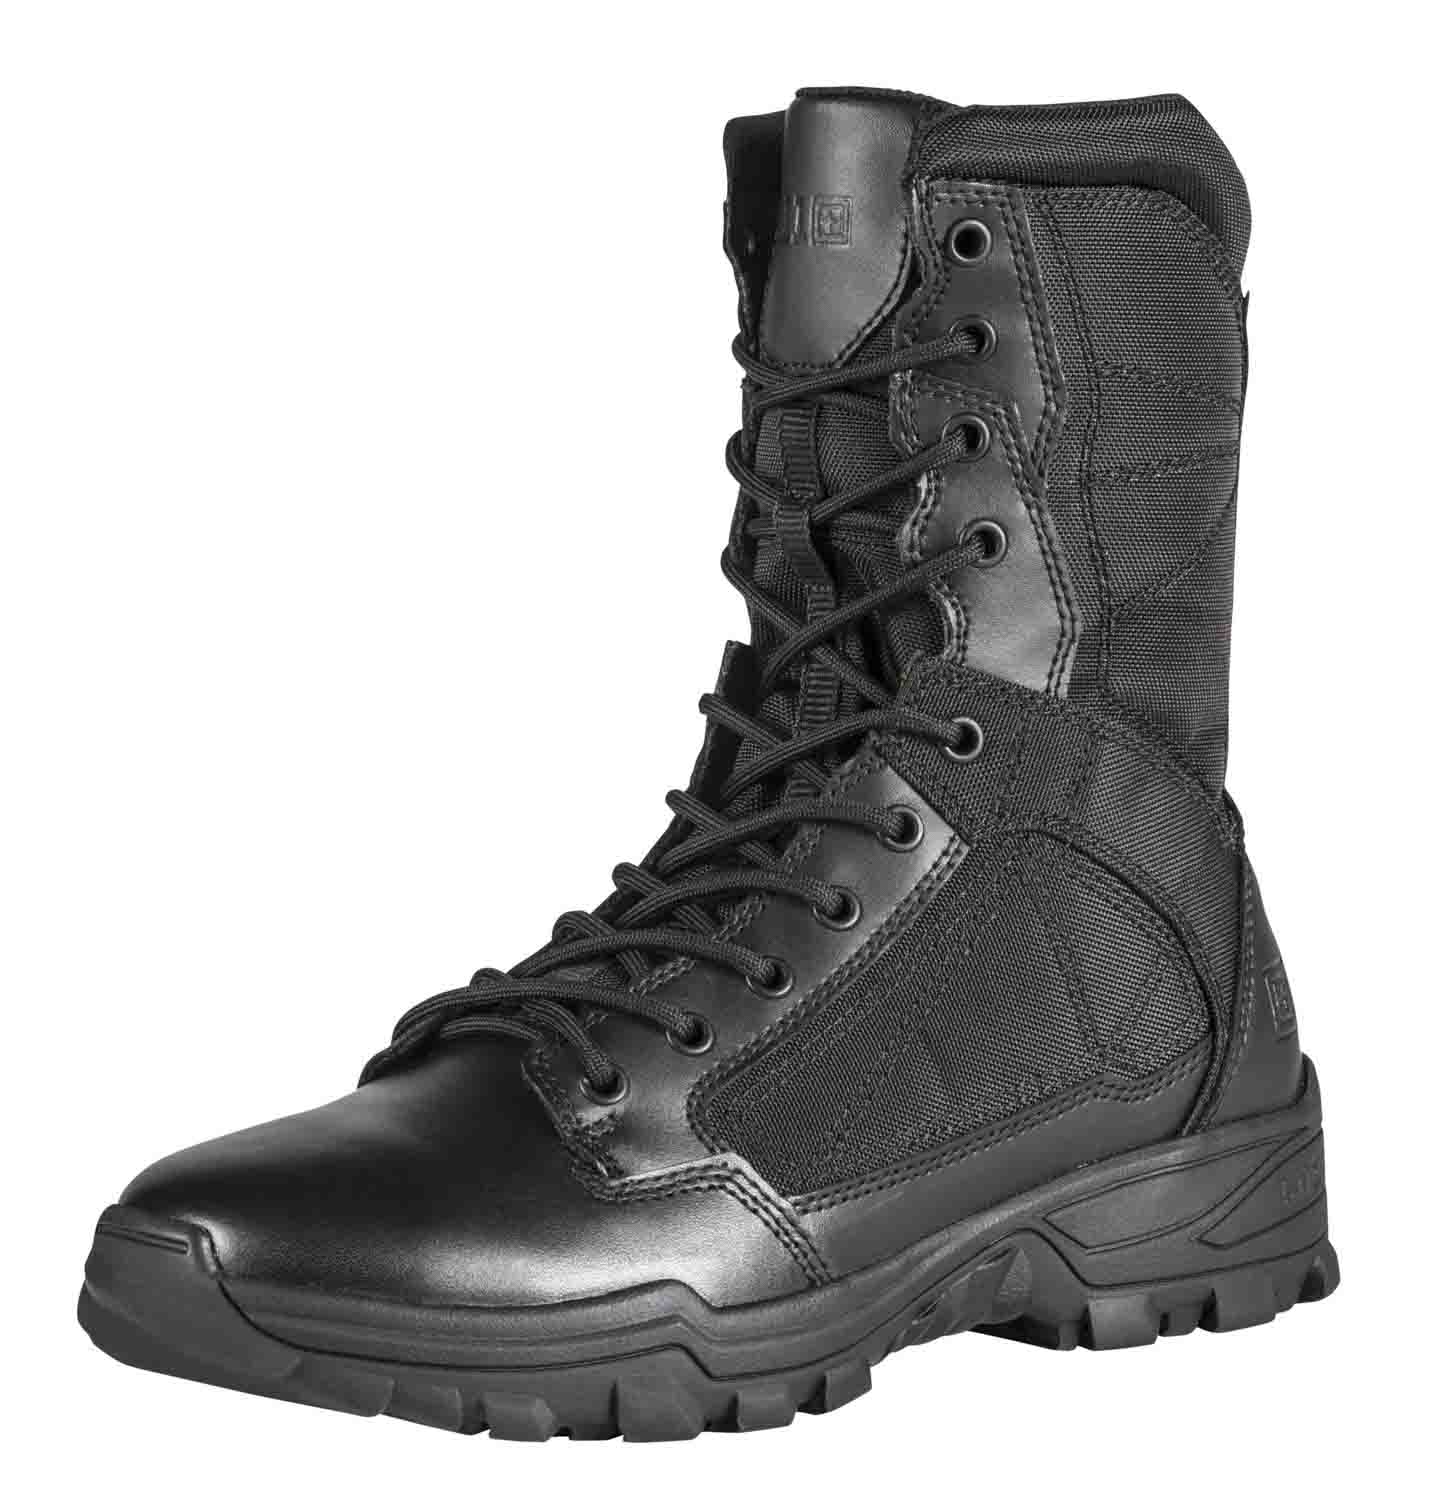 "5.11 Fast-Tac 8"" Waterproof Boots"